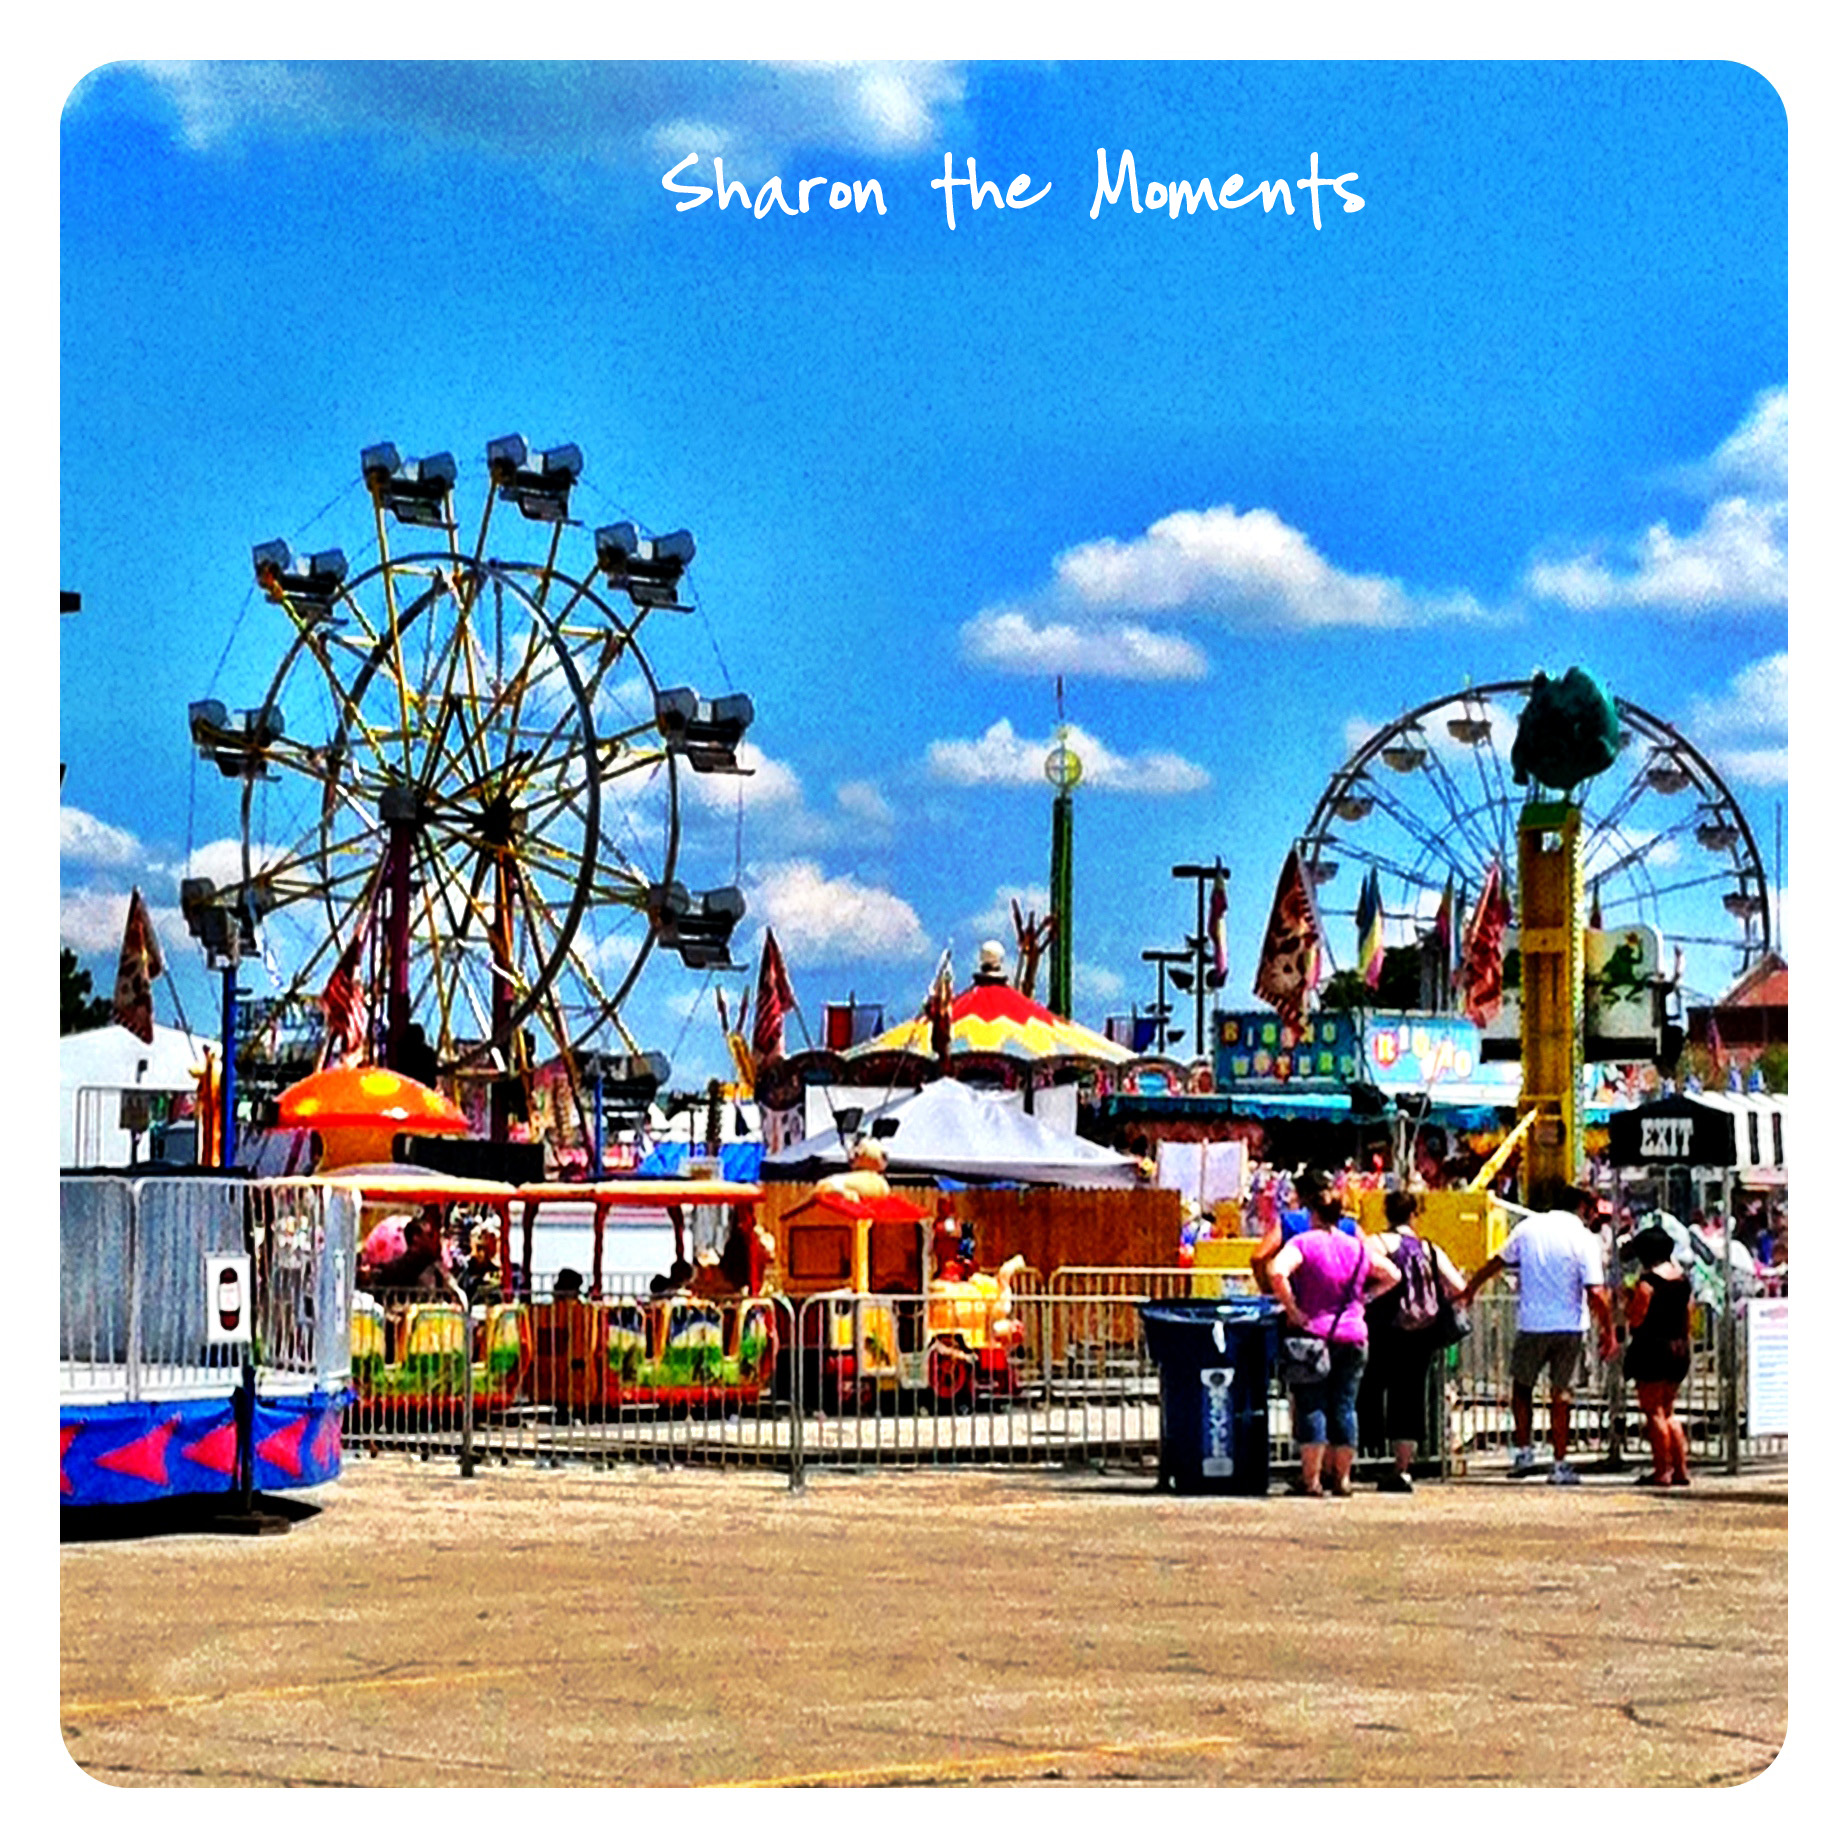 Ohio State Fair Ferris Wheel in the Midway|Sharon the Moments blog